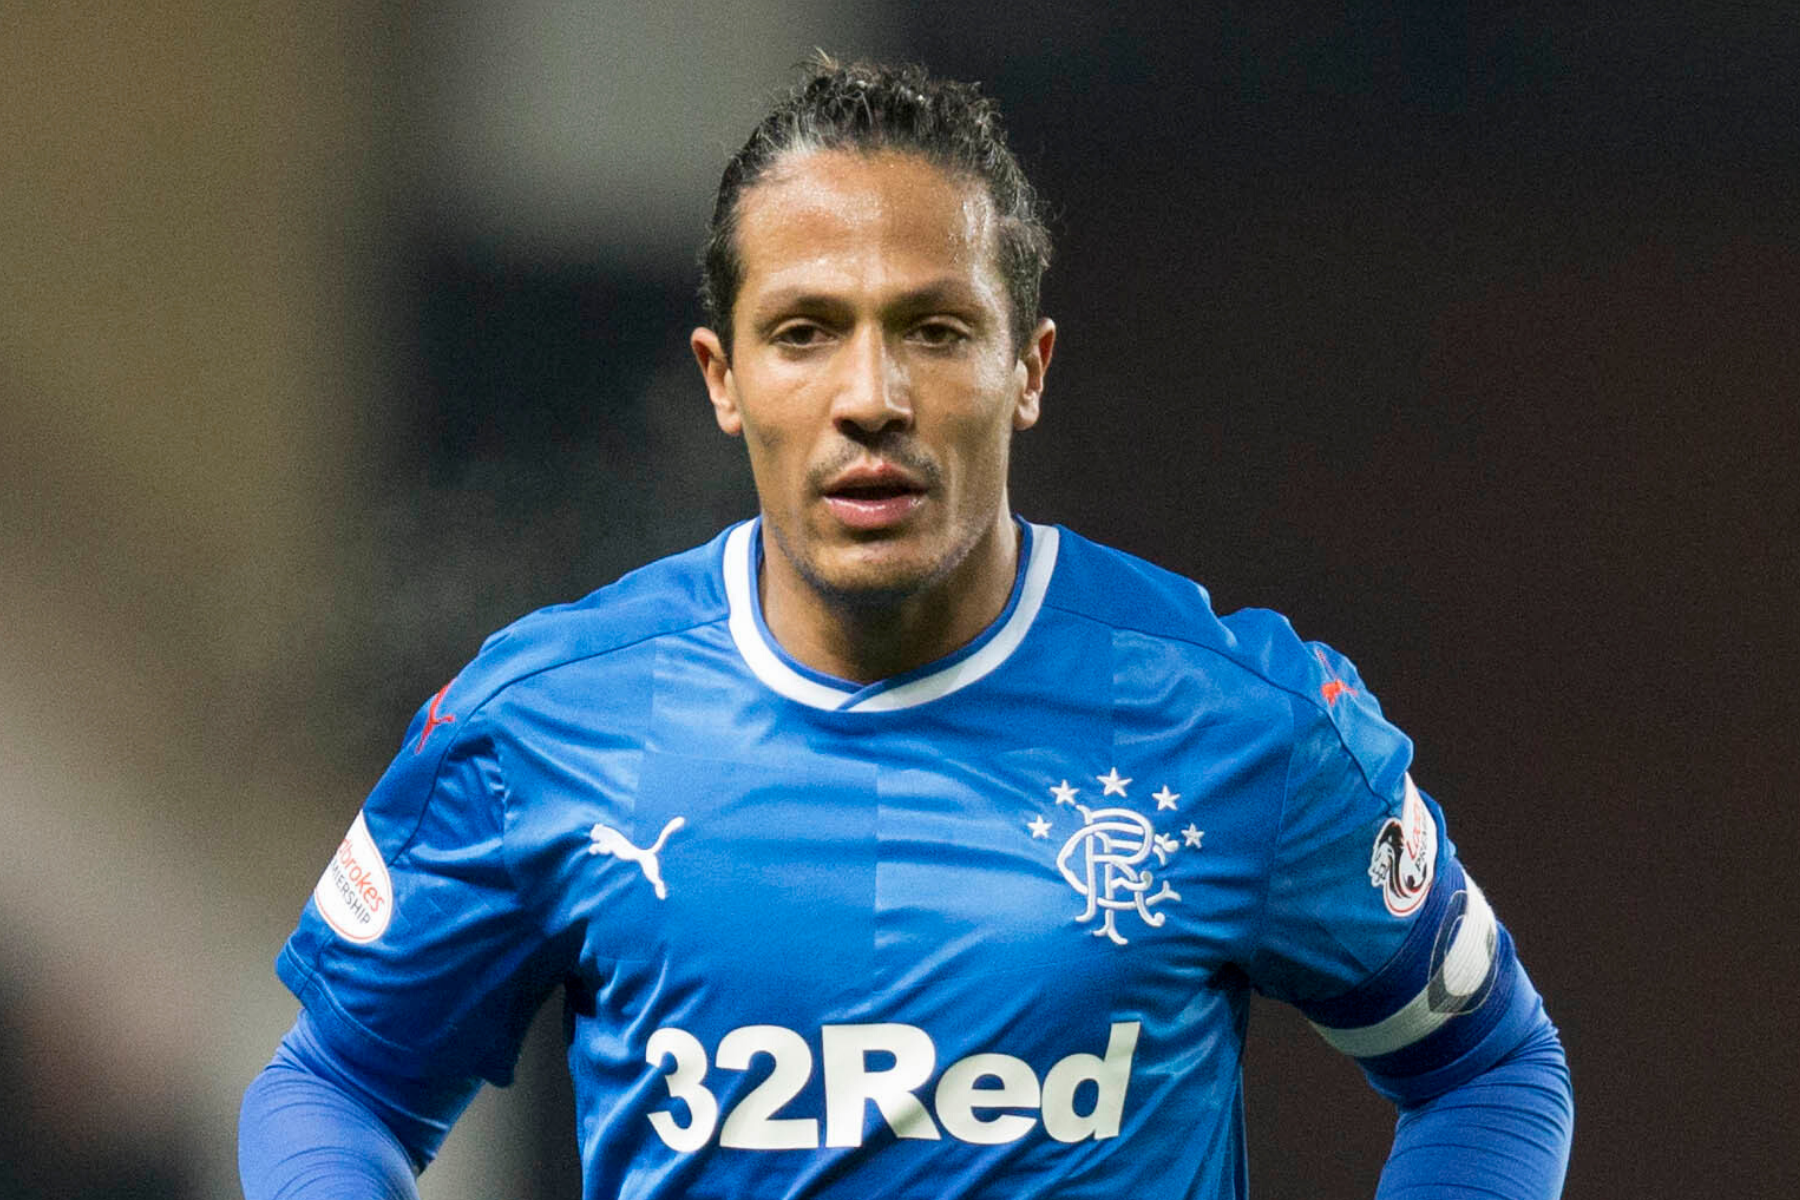 Ex-Rangers star Bruno Alves hails Ibrox spell as an 'amazing experience'